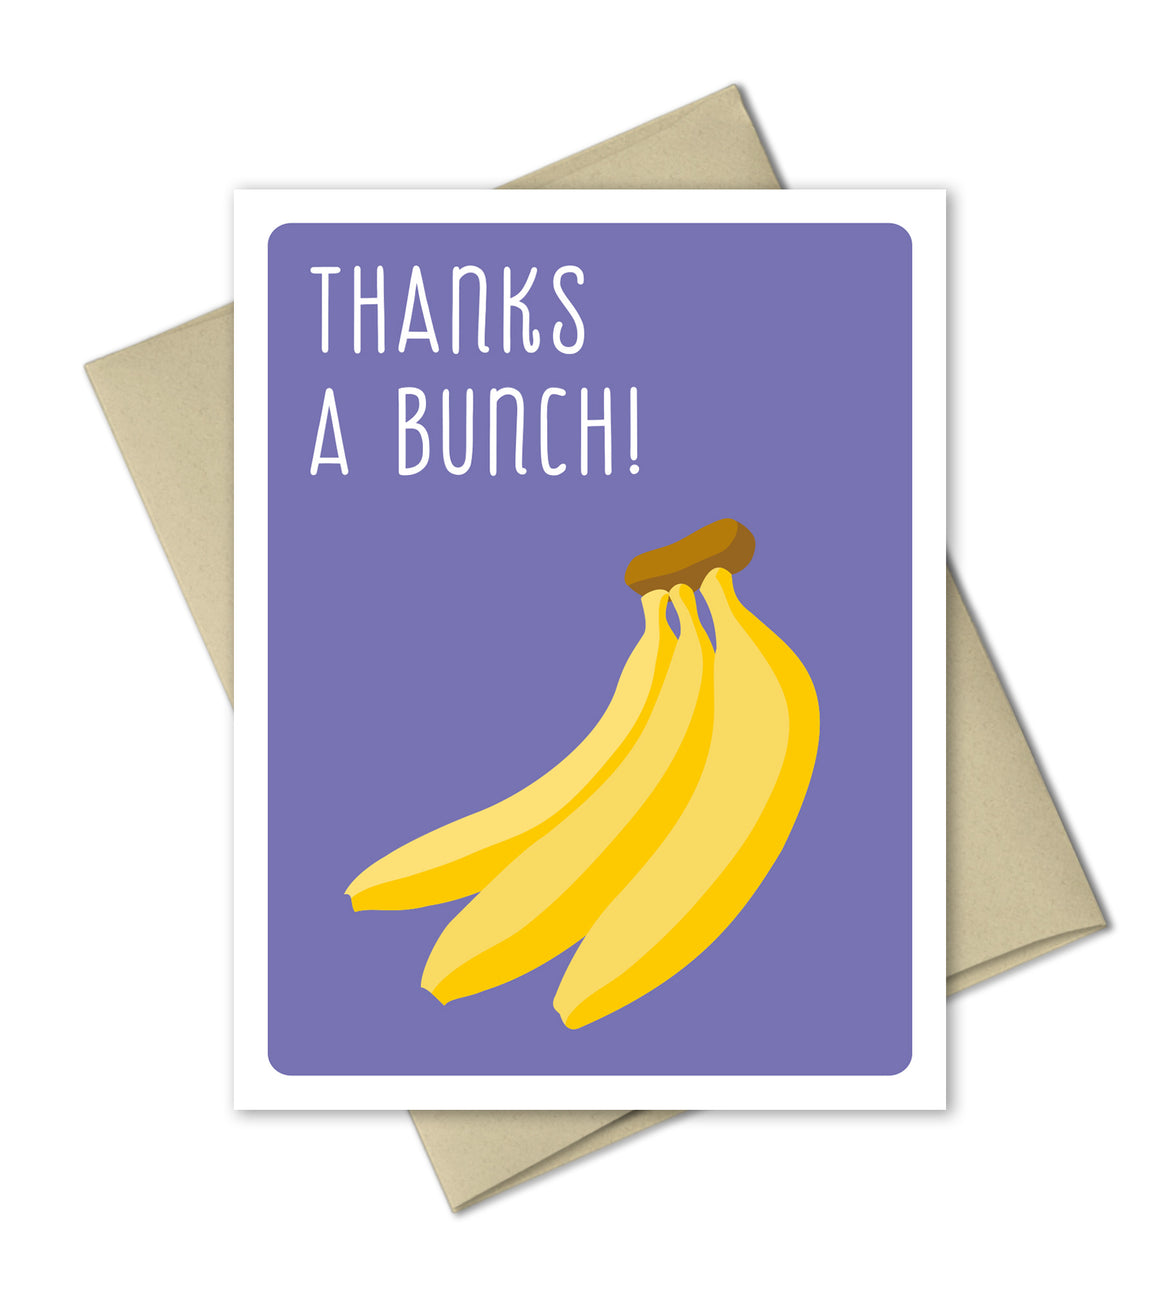 Thank You Card - Bananas Bunch - The Imagination Spot